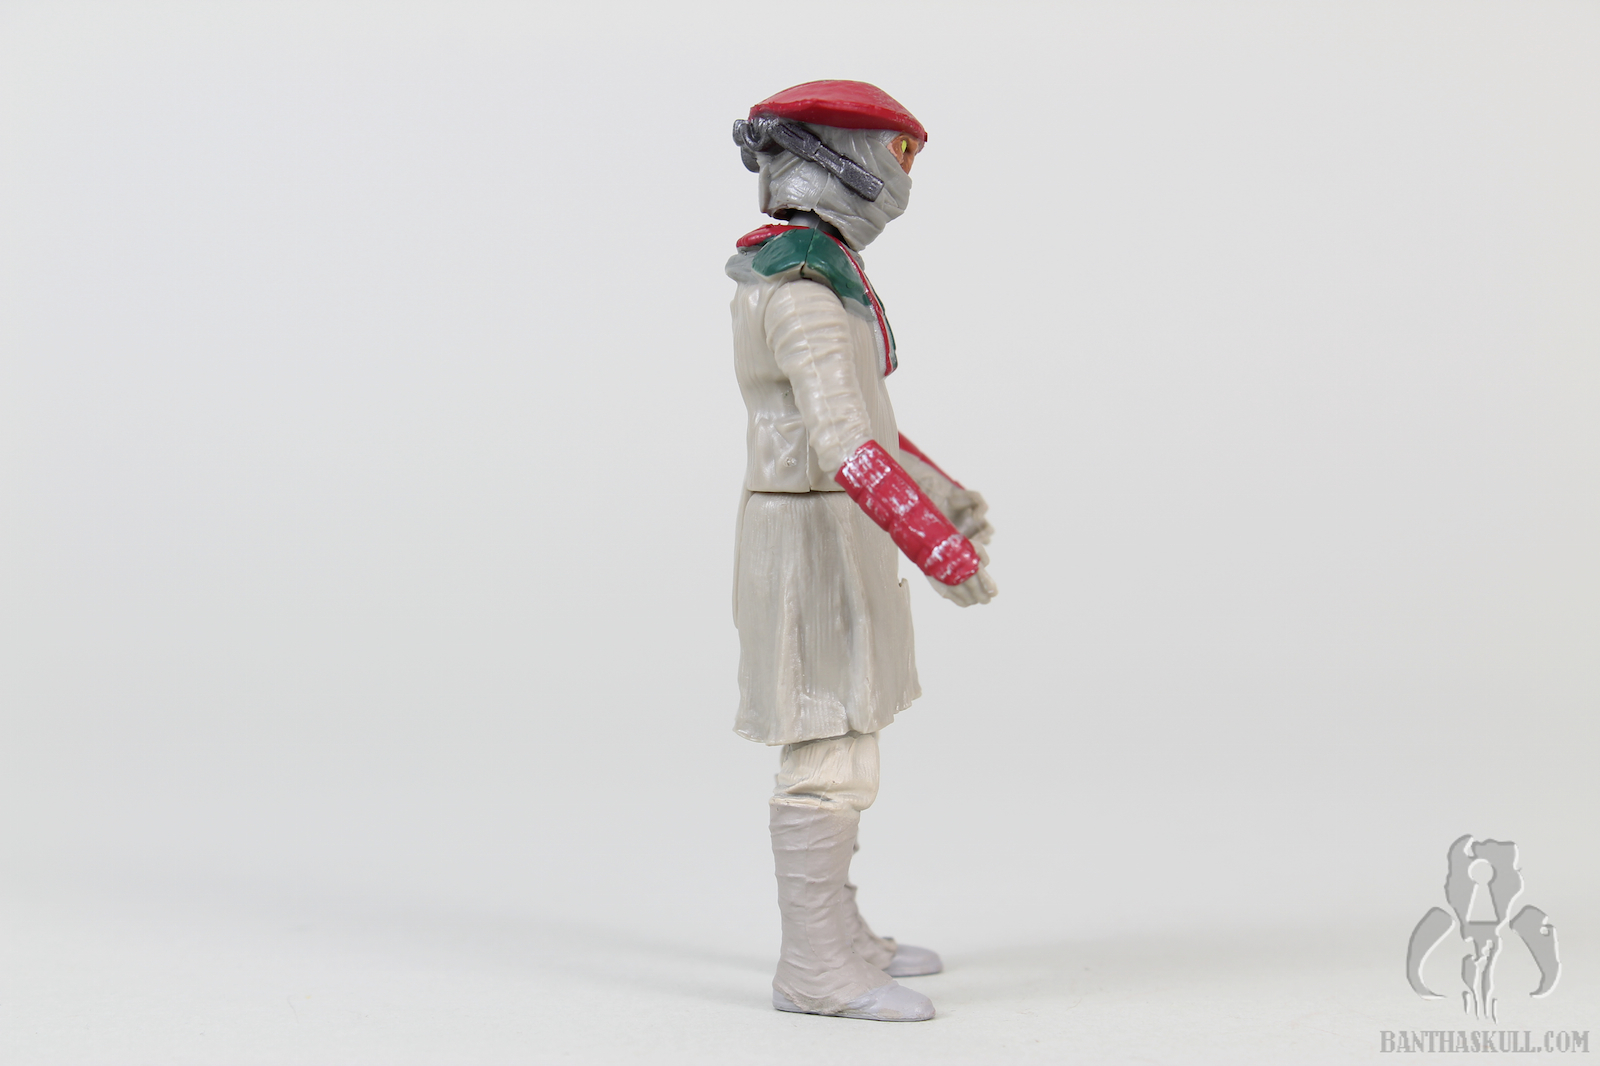 The Force Awakens Constable Zuvio Star Wars